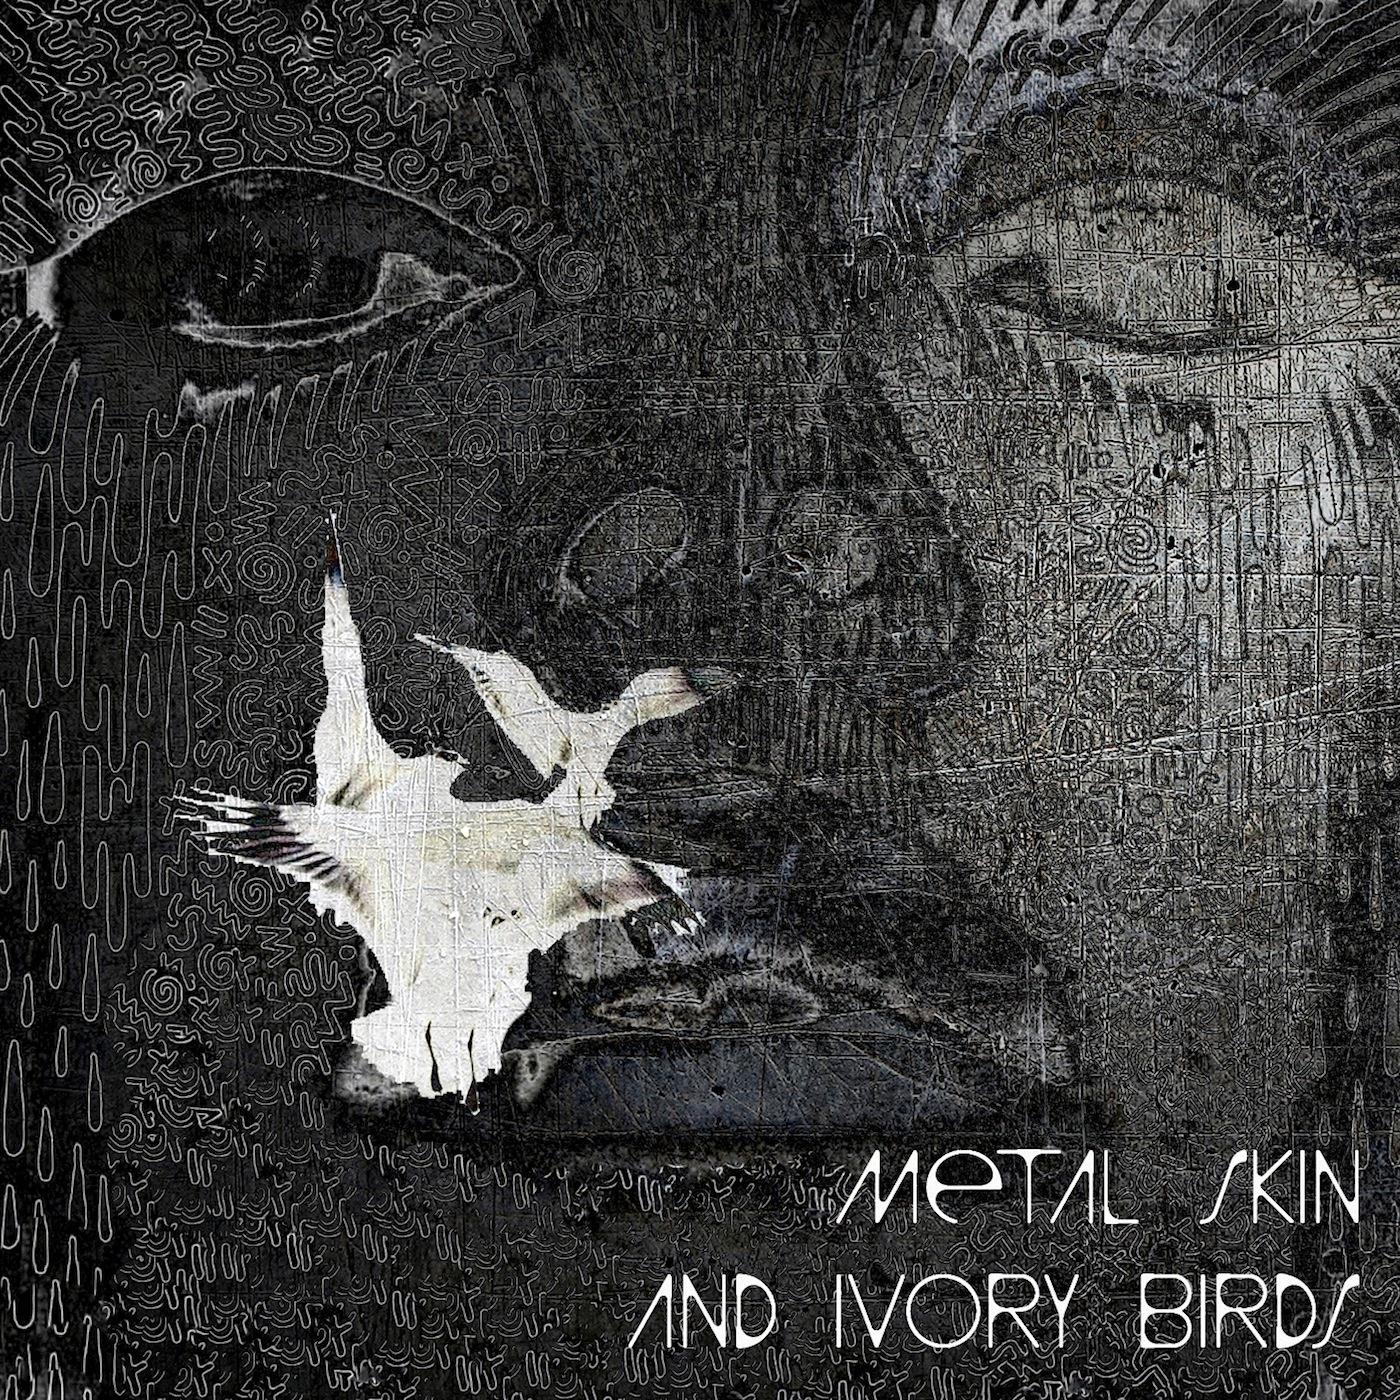 Metal Skin and Ivory Birds